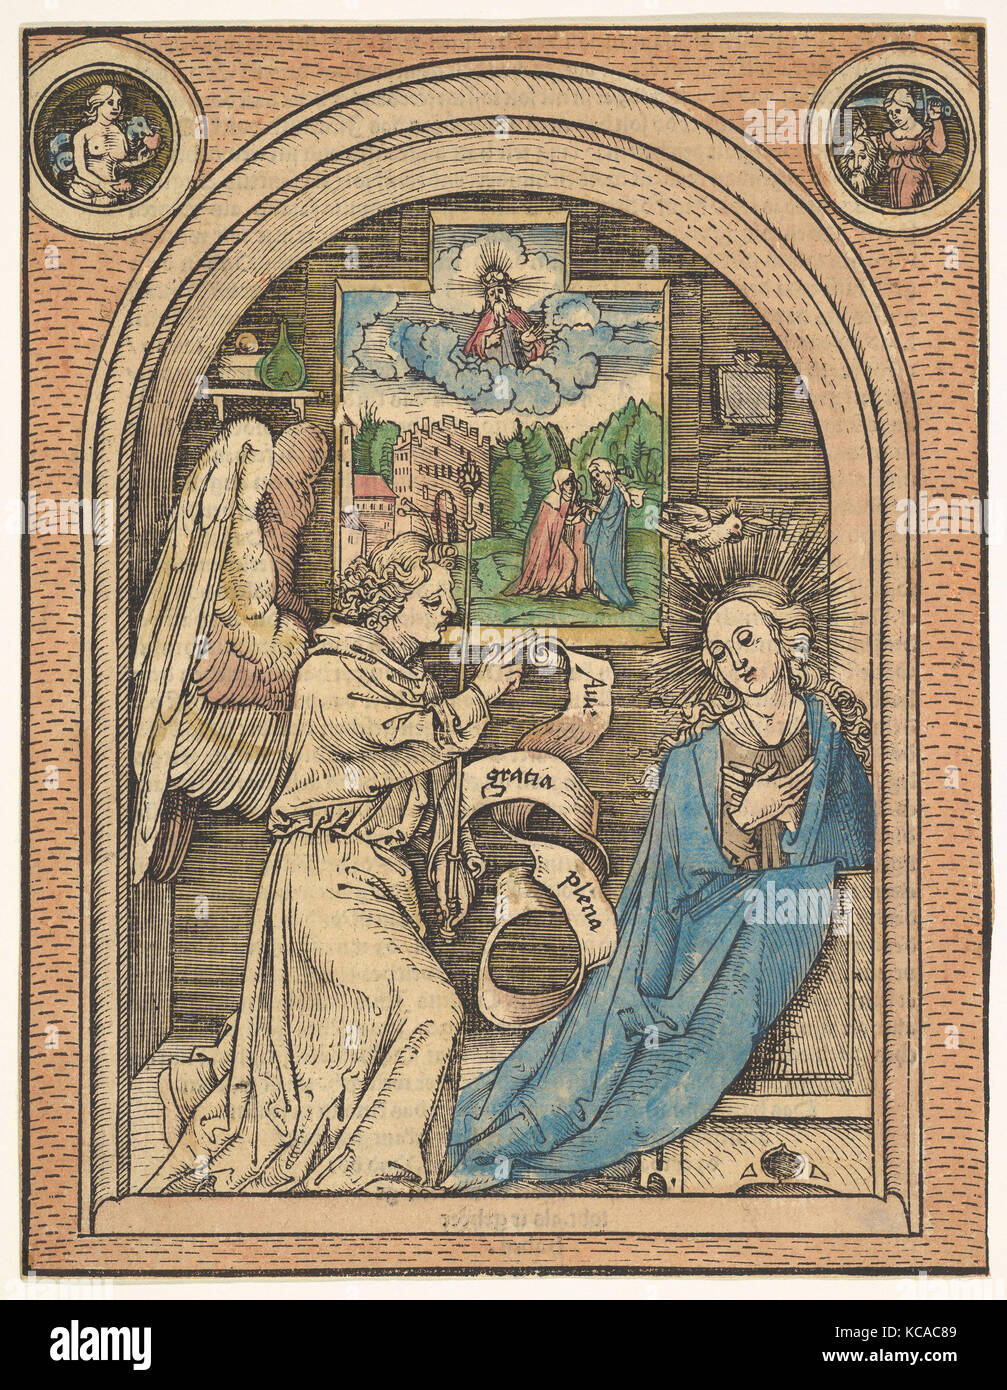 The Annunciation, Hans Wechtlin, late 15th–early 16th century - Stock Image